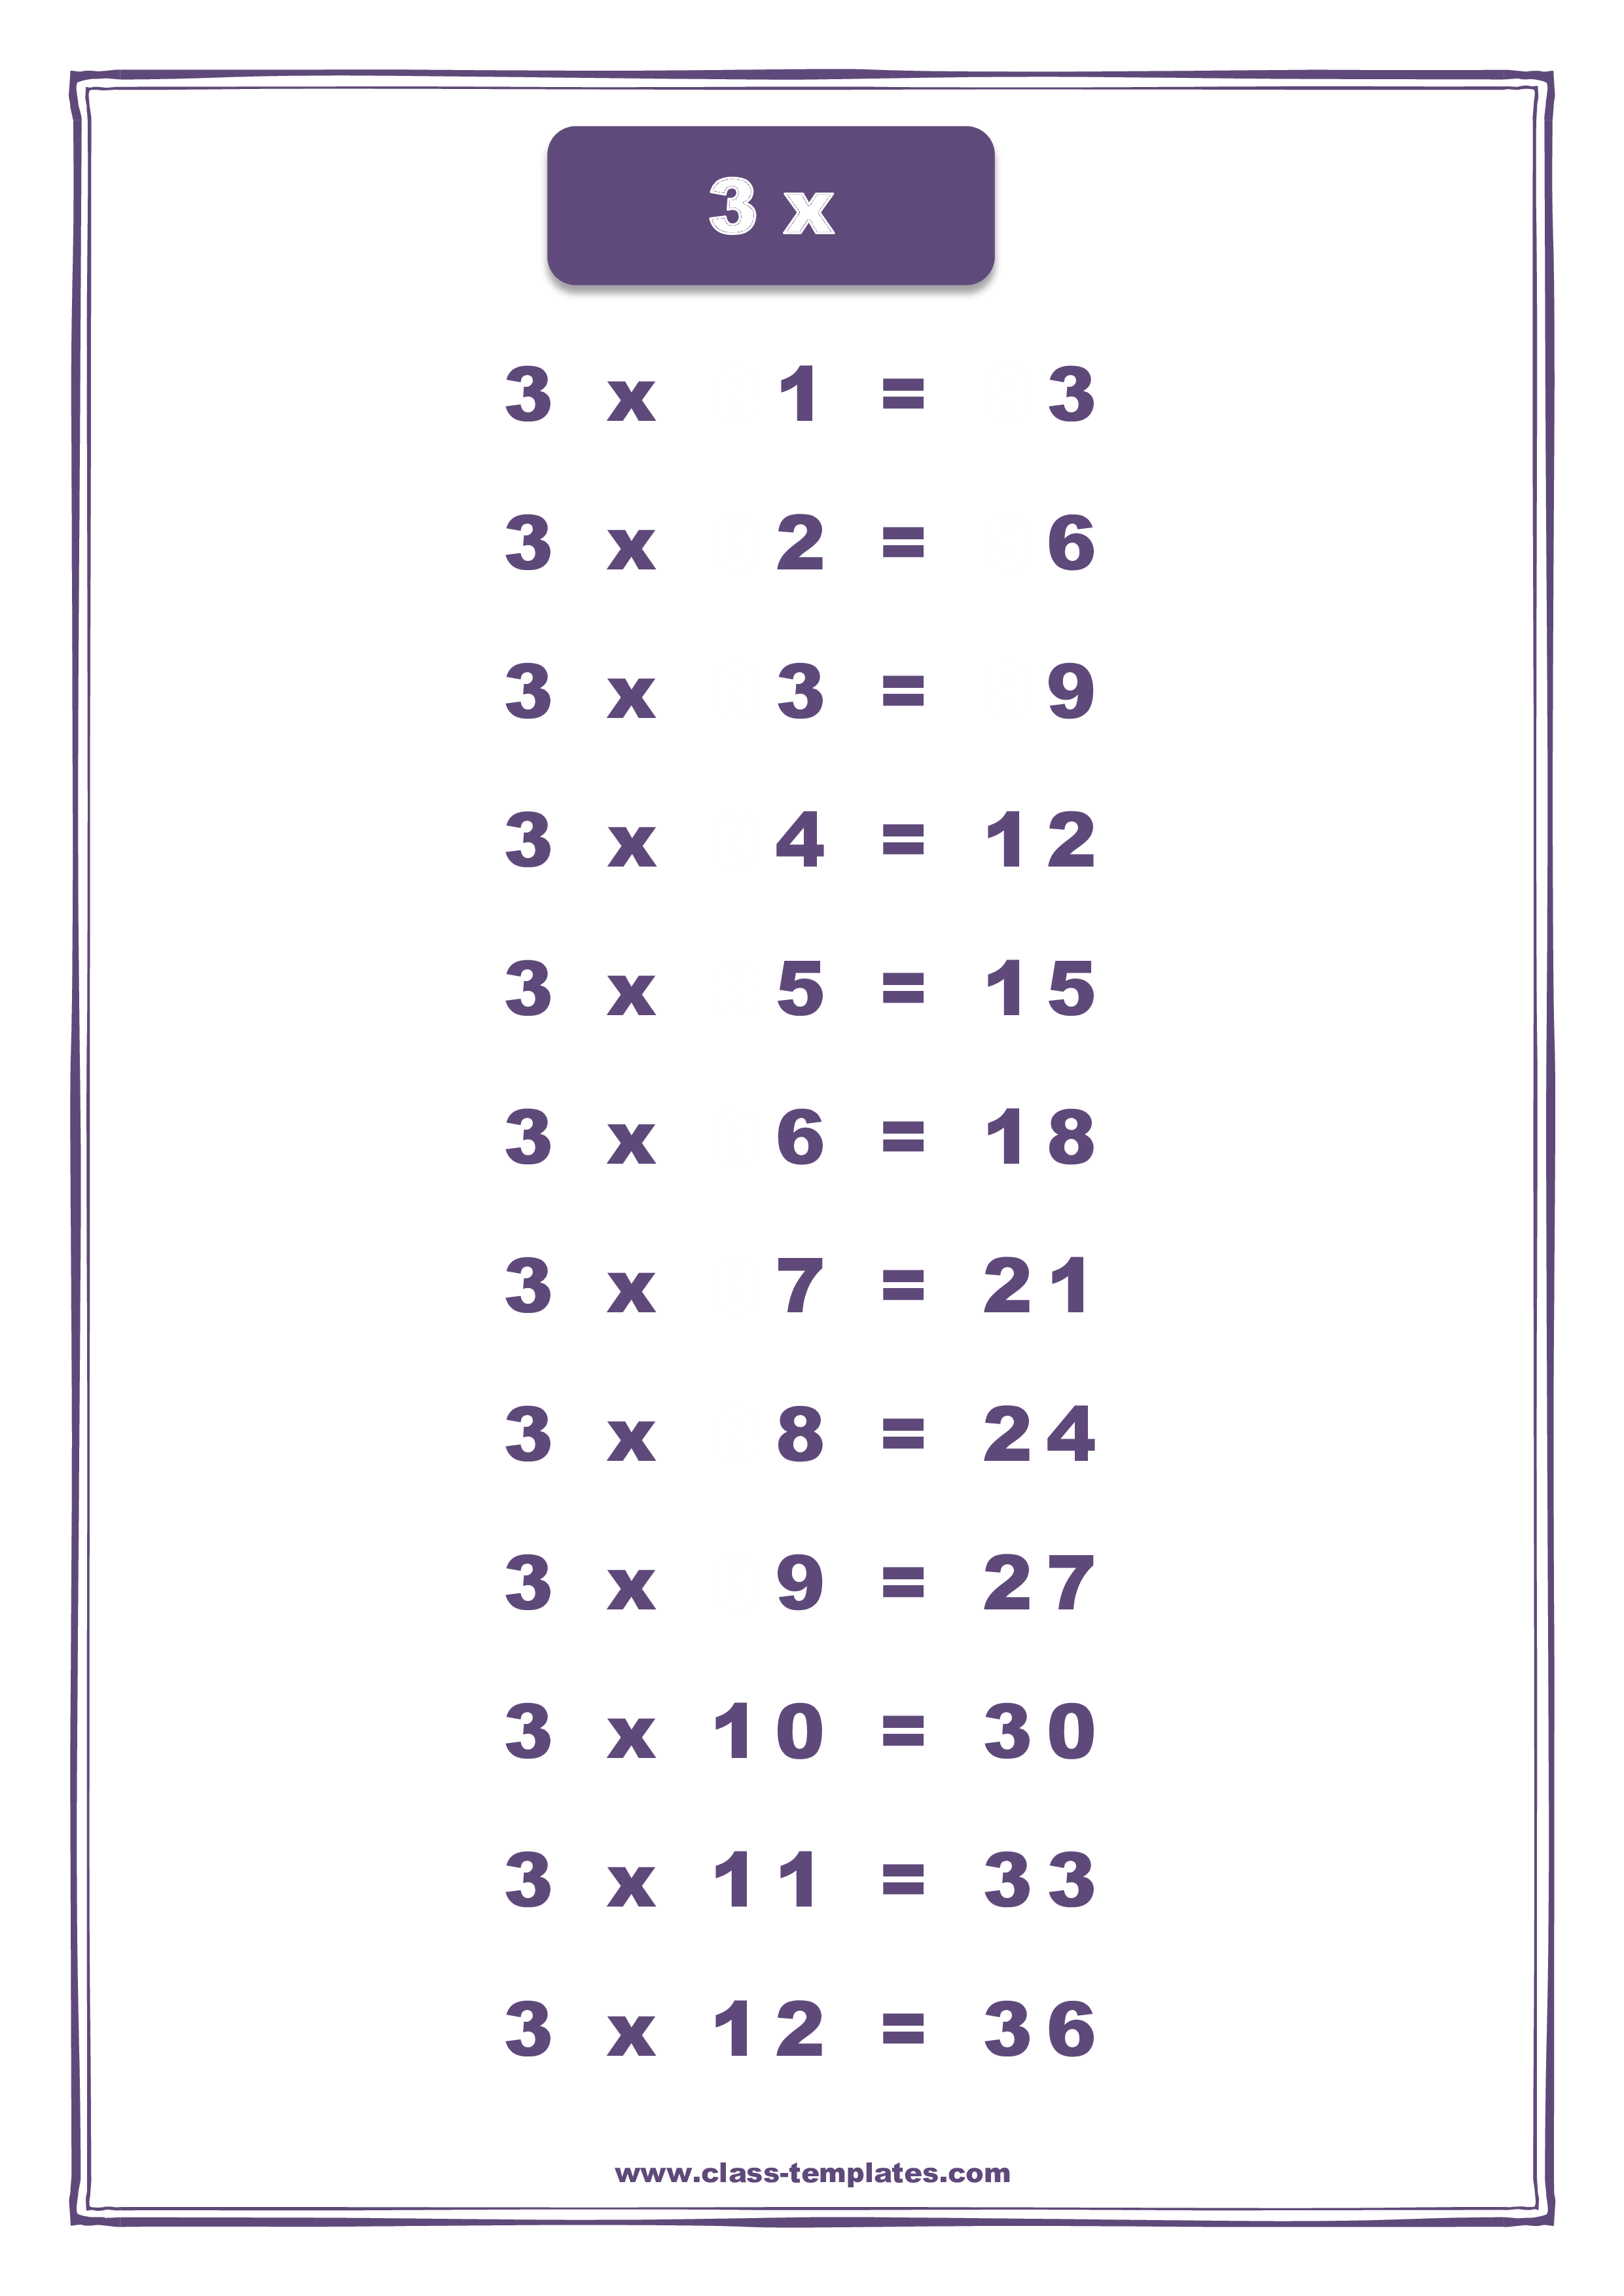 3X Multiplication Times Table main image